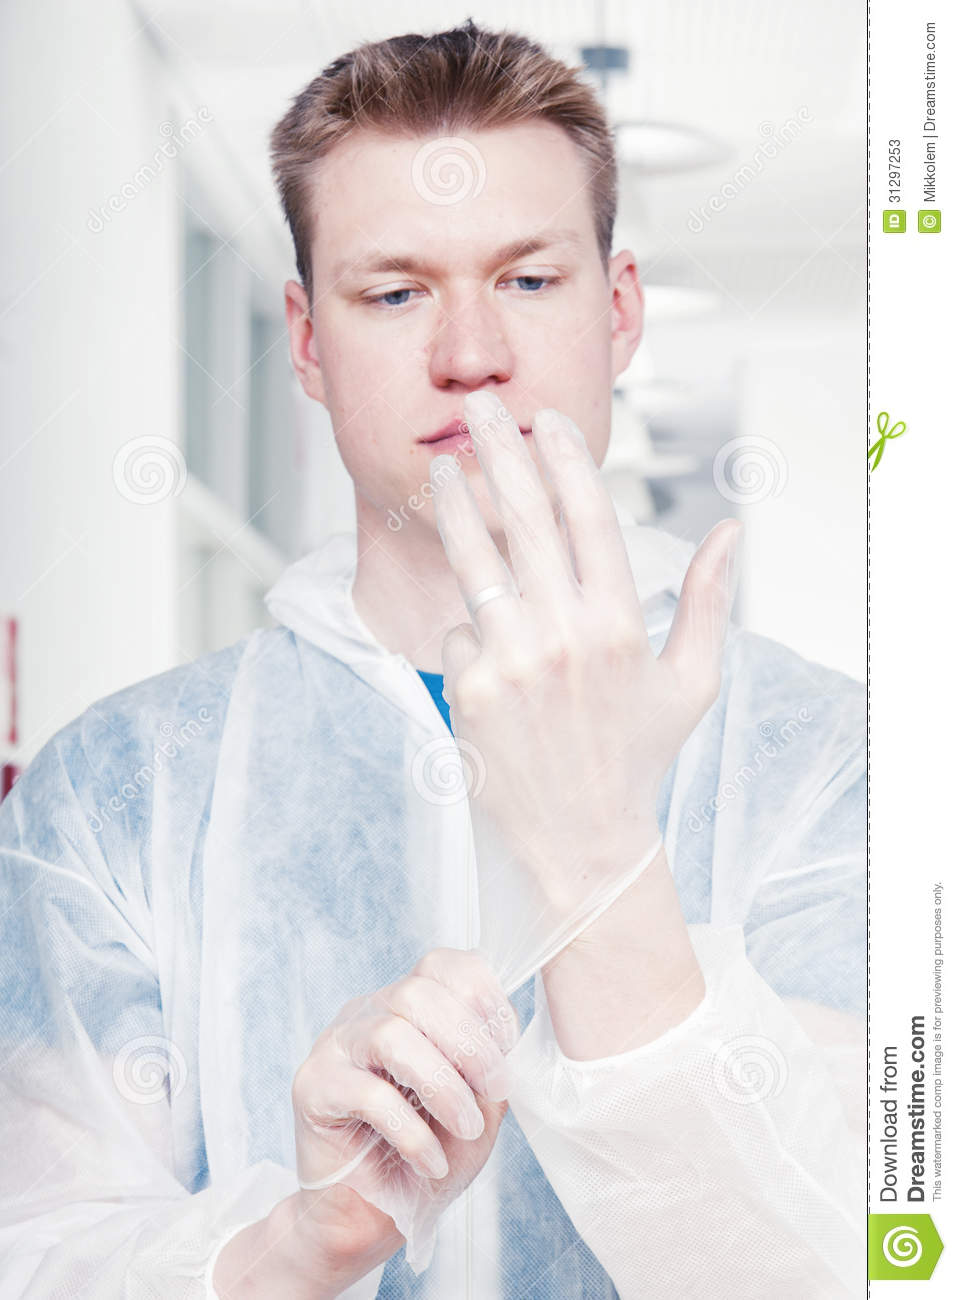 Man cleaning office wearing protective overalls, putting rubber gloves ...